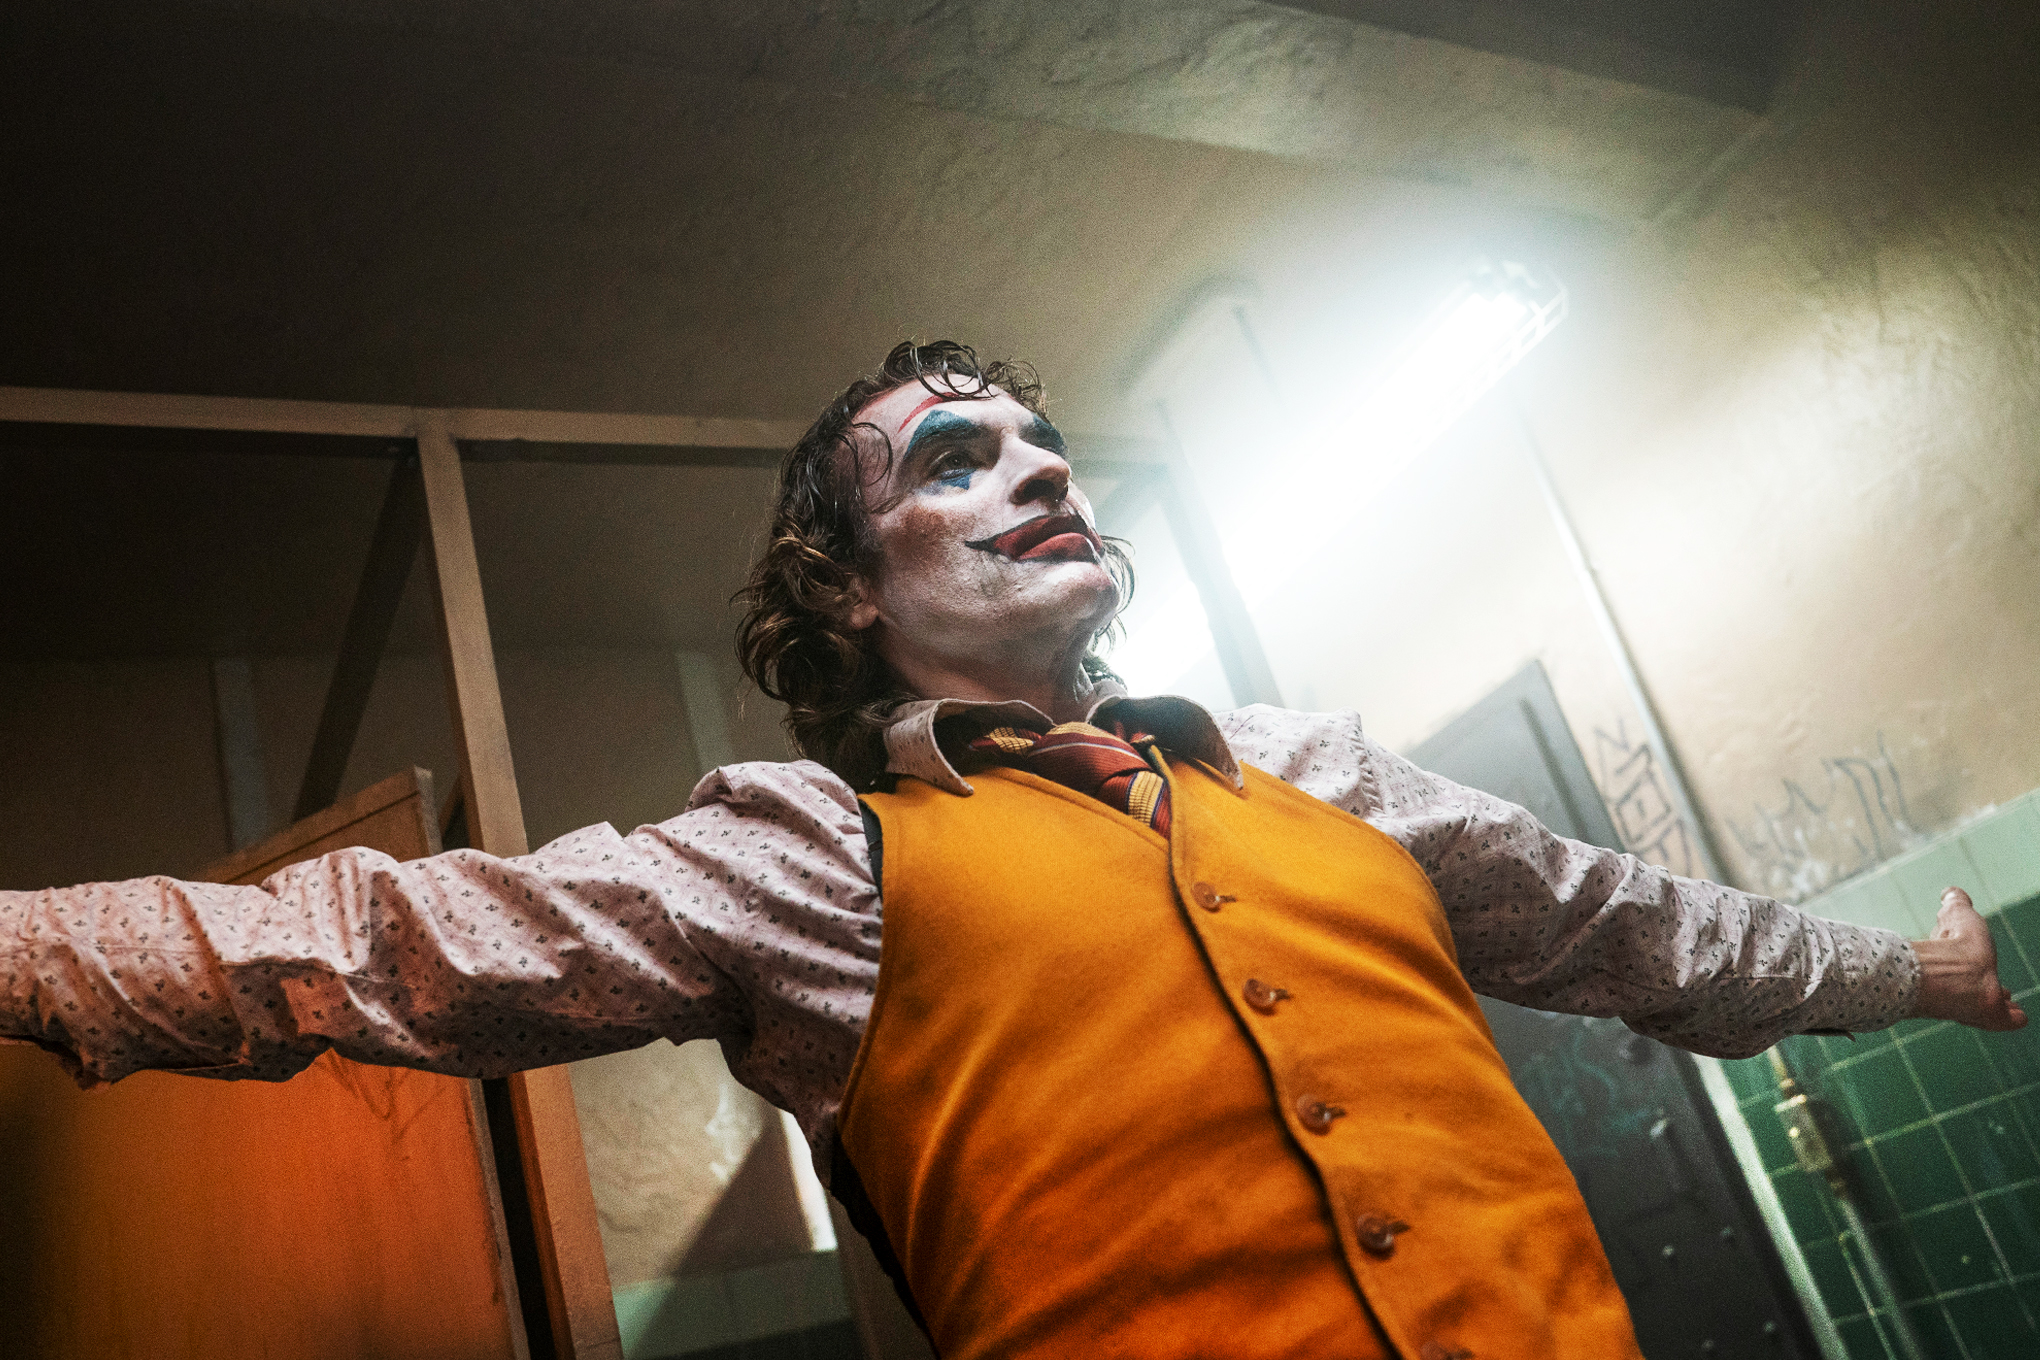 Joker sequel in the works with Todd Phillips and Joaquin Phoenix